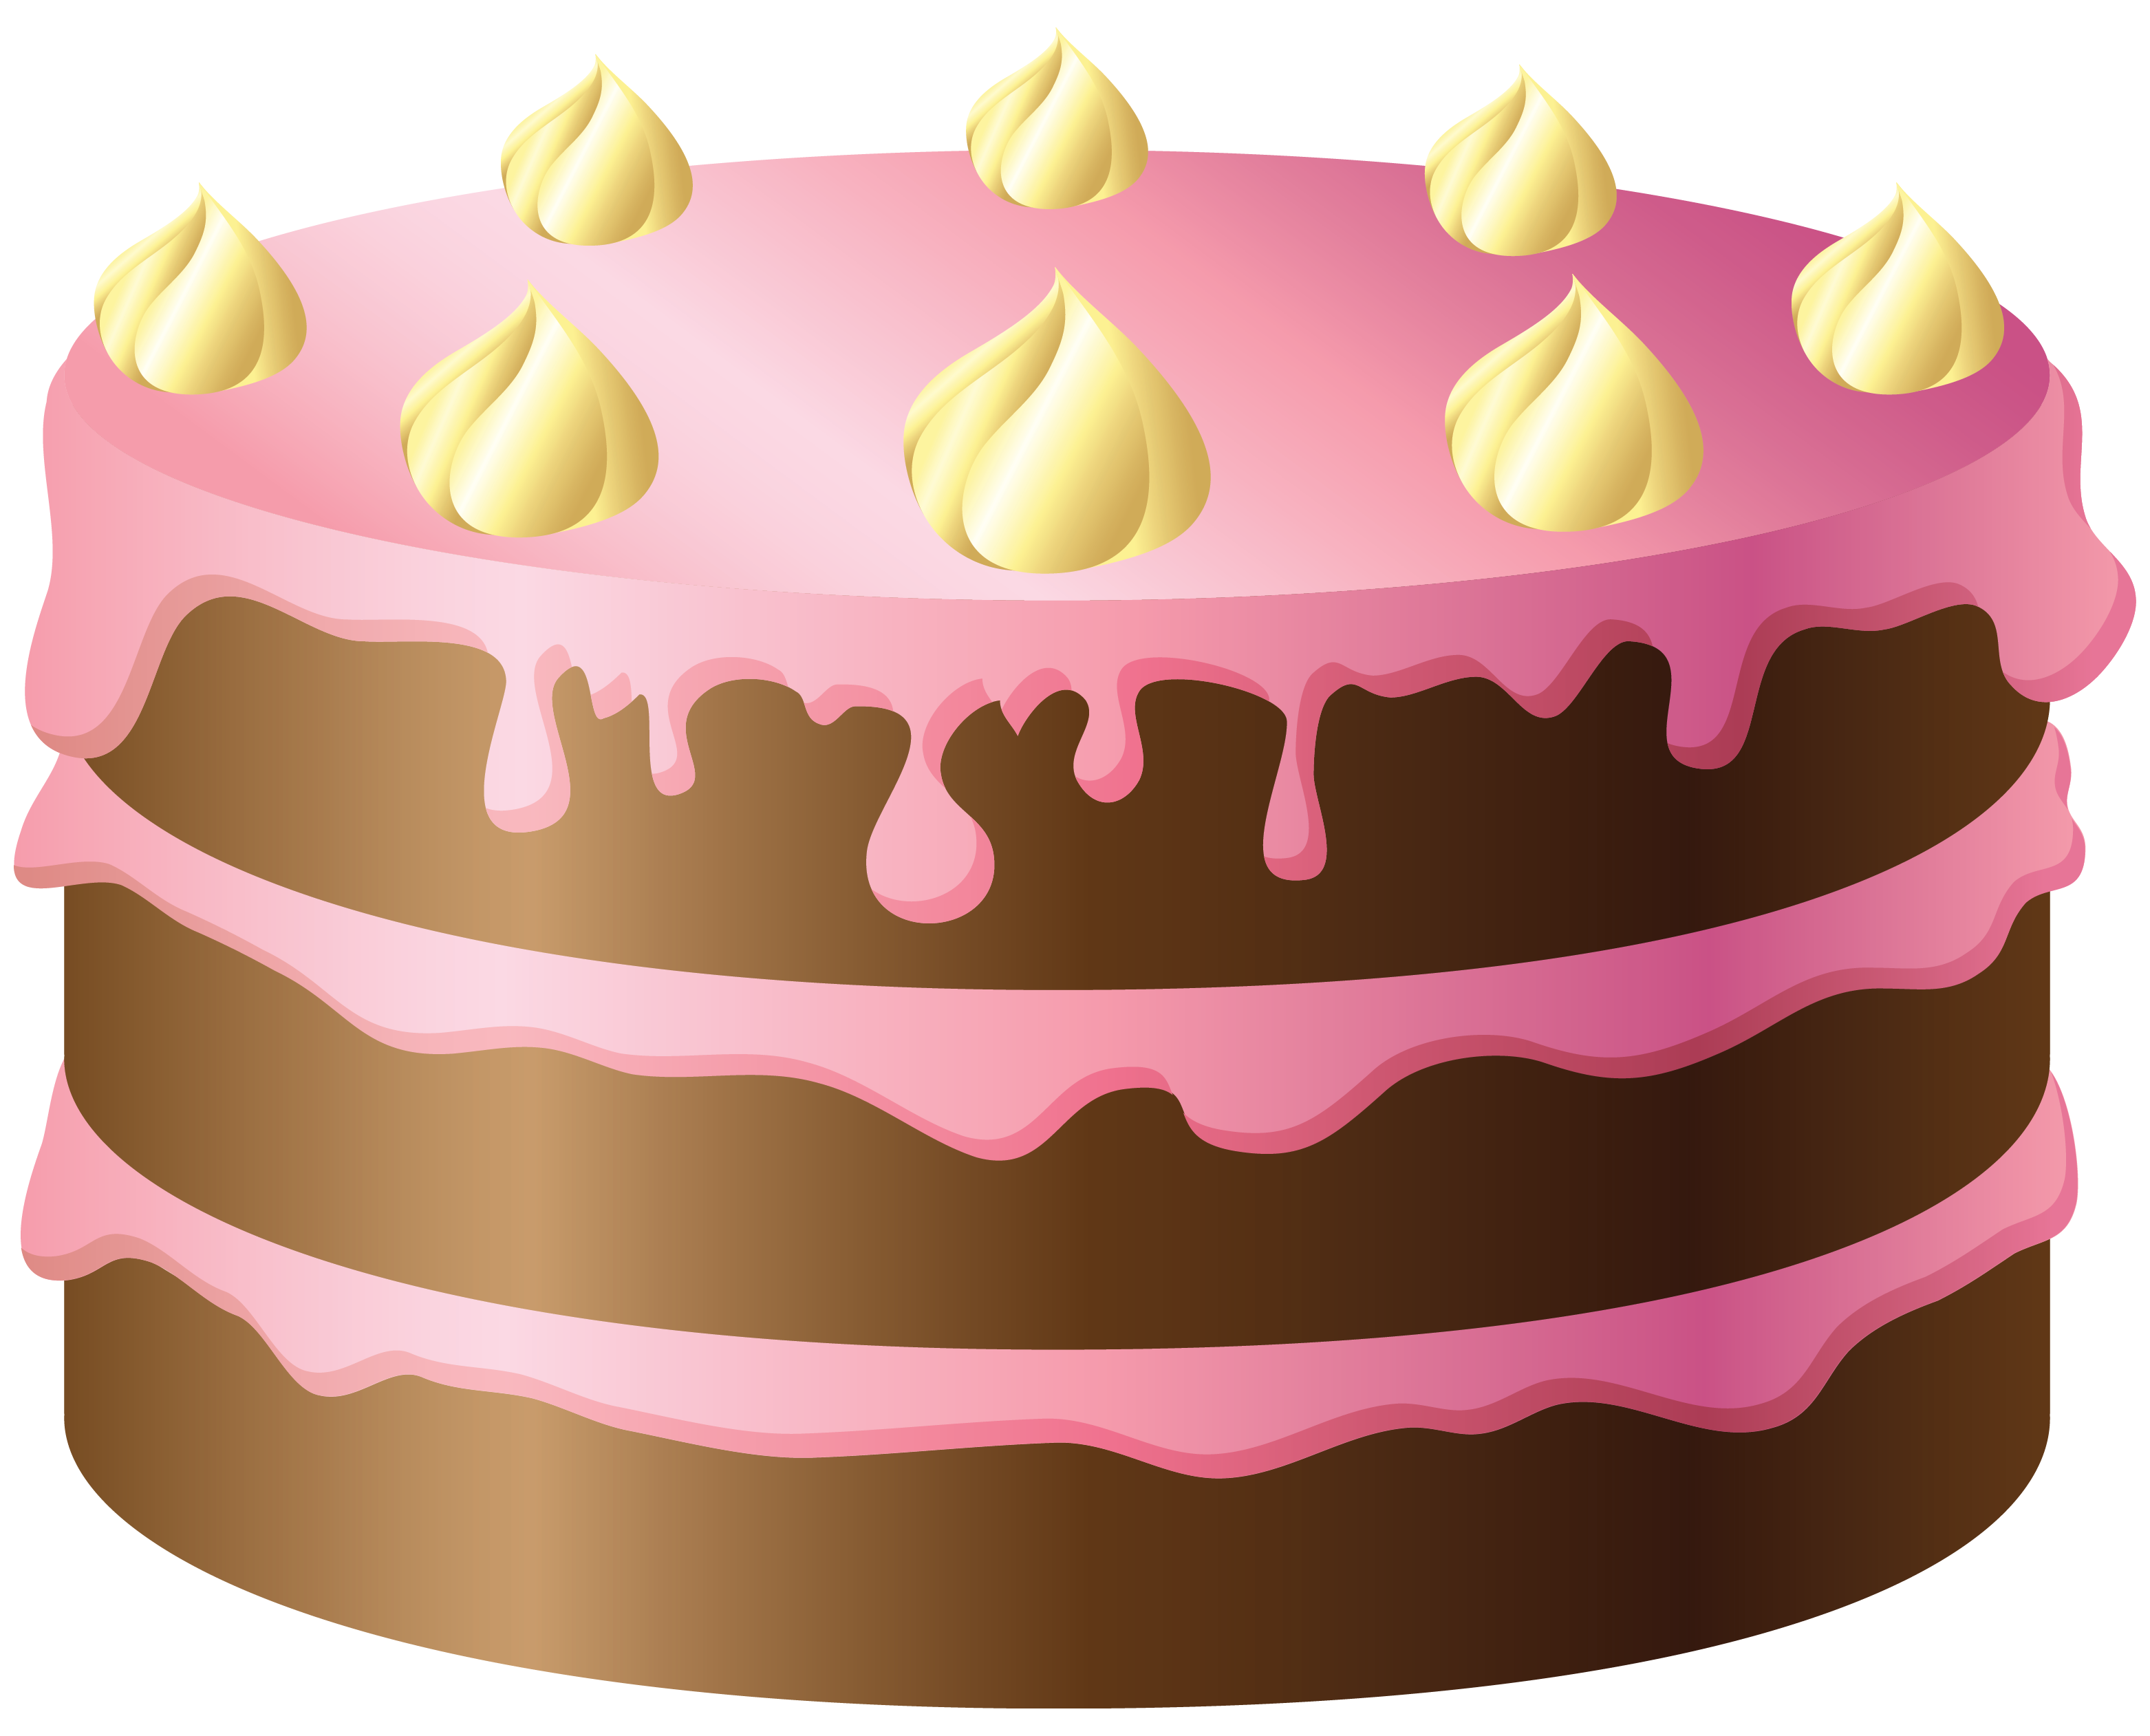 1st birthday cake clipart free clipart images 3 clipart cow png stock 1st birthday cake clipart free clipart images 3 clipartcow - Clipartix png stock